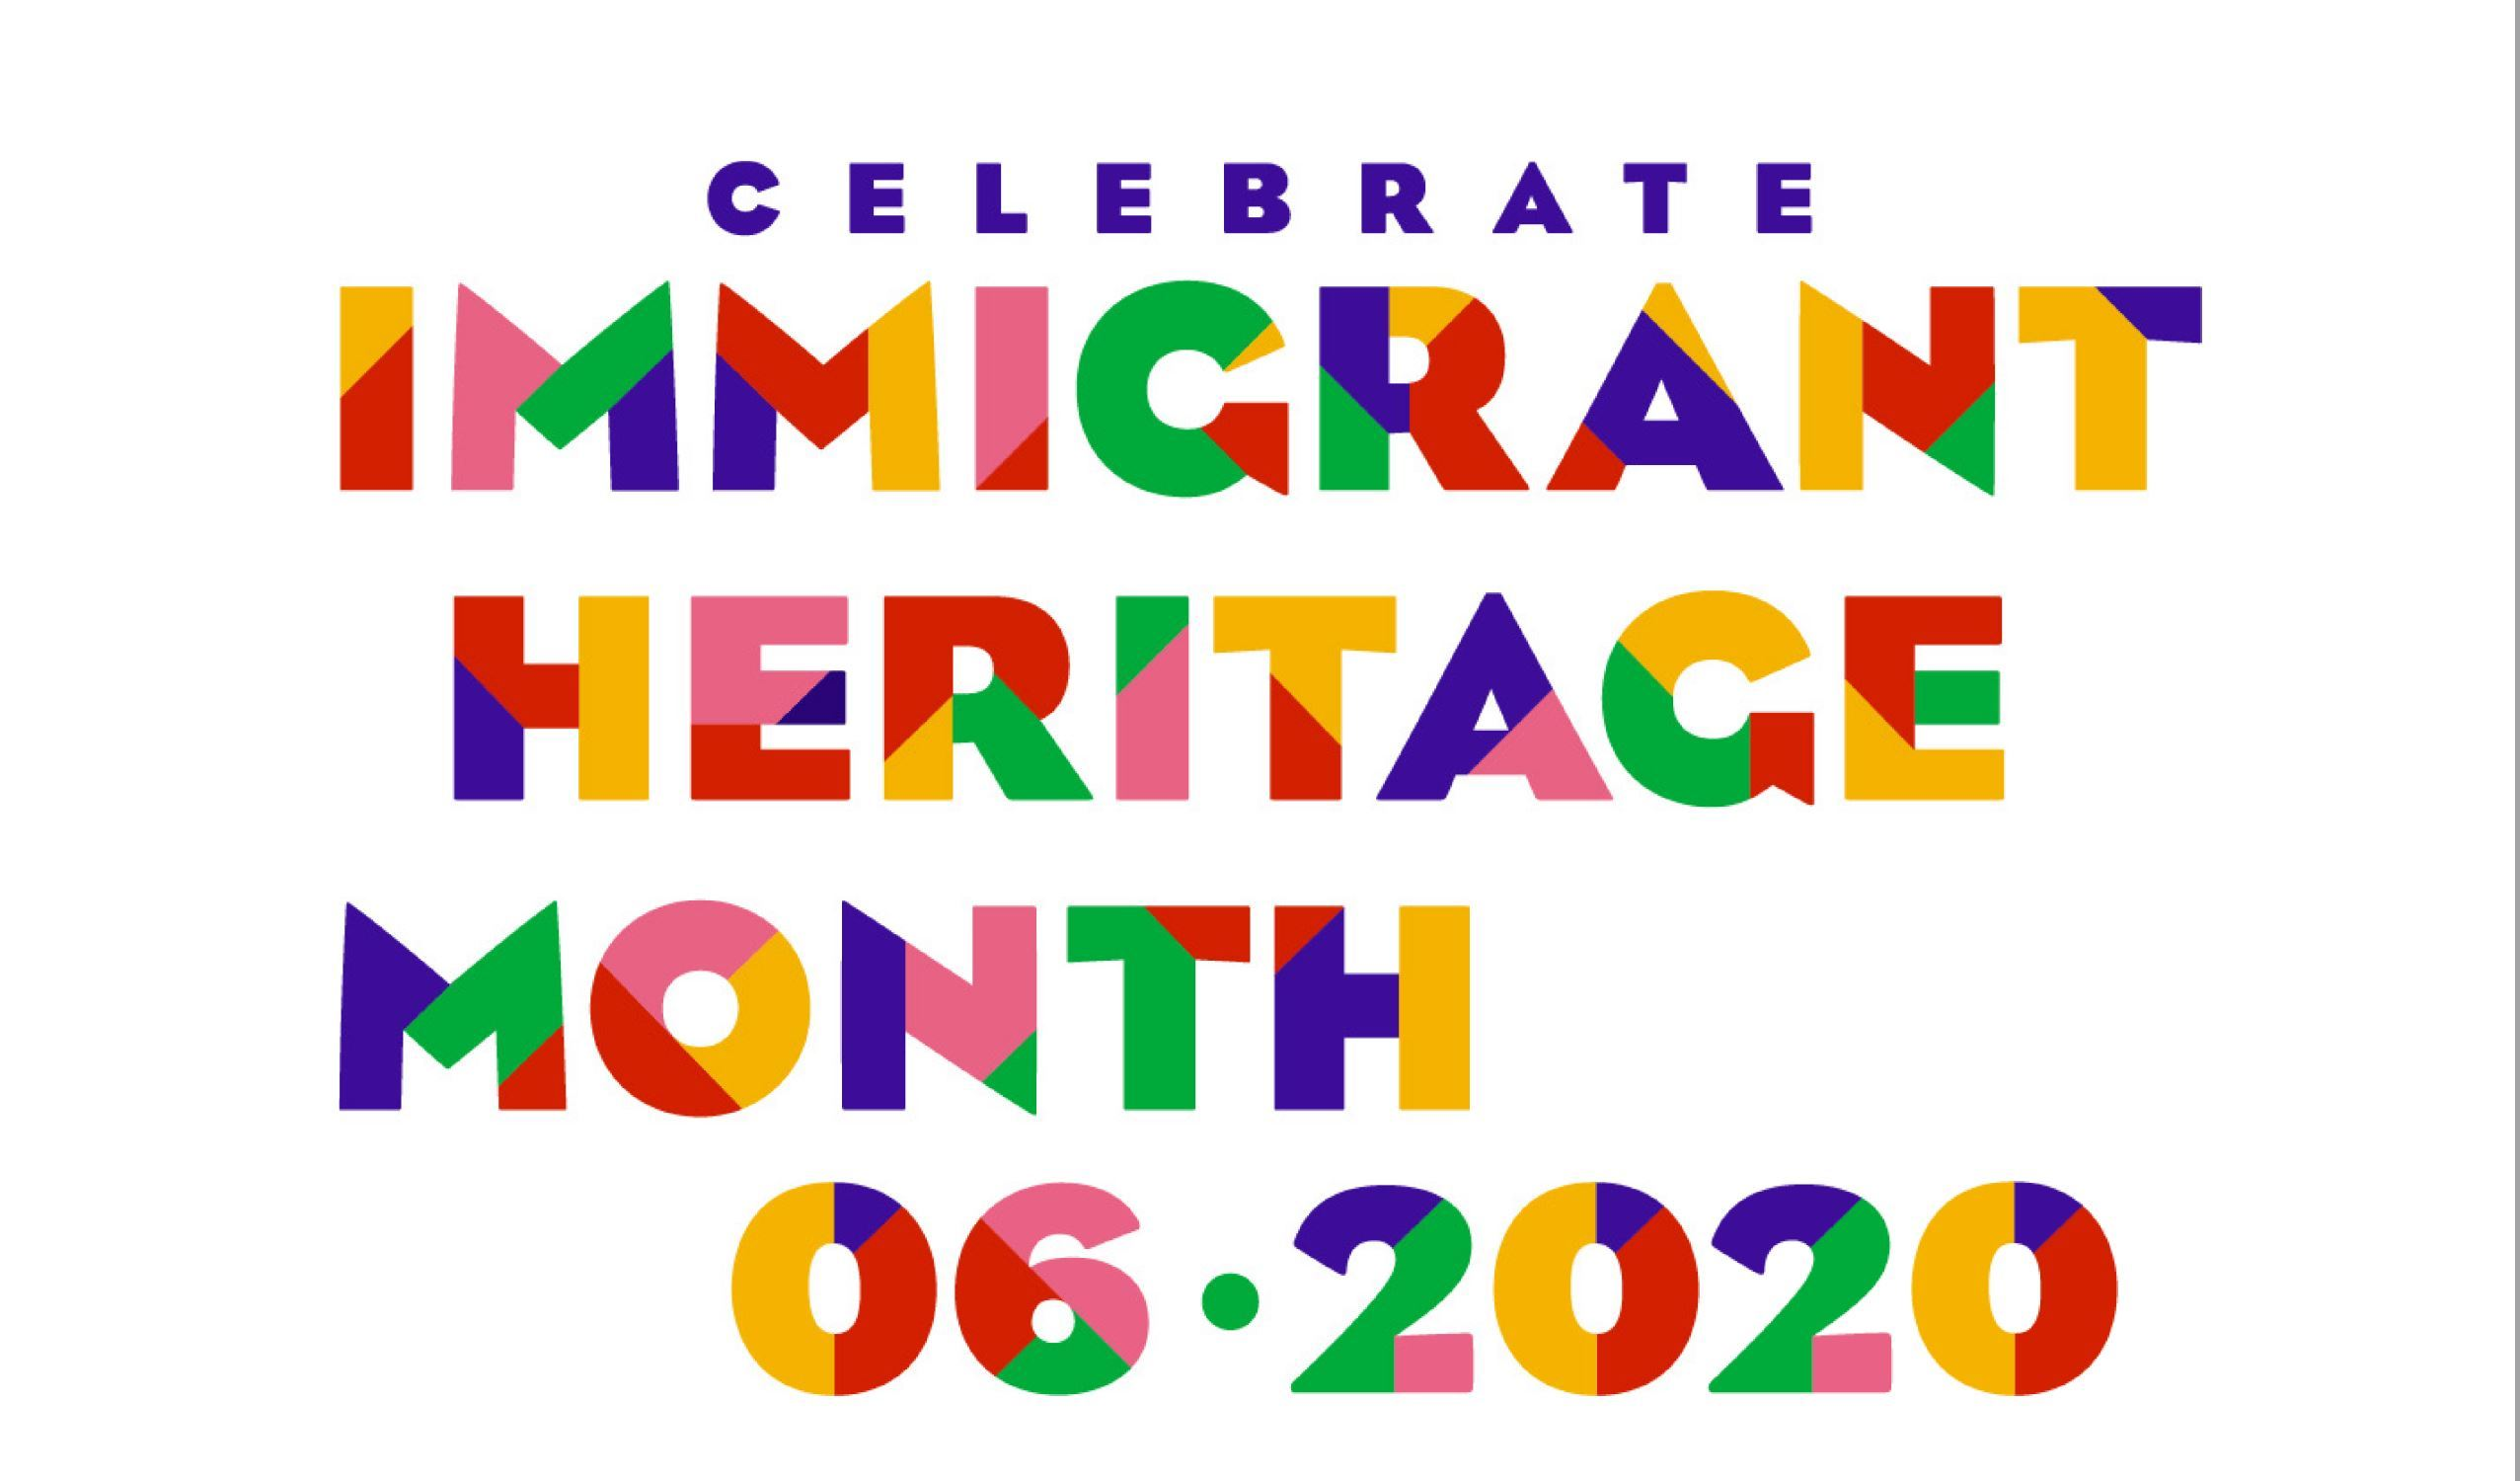 Immigrant Heritage Month 2020